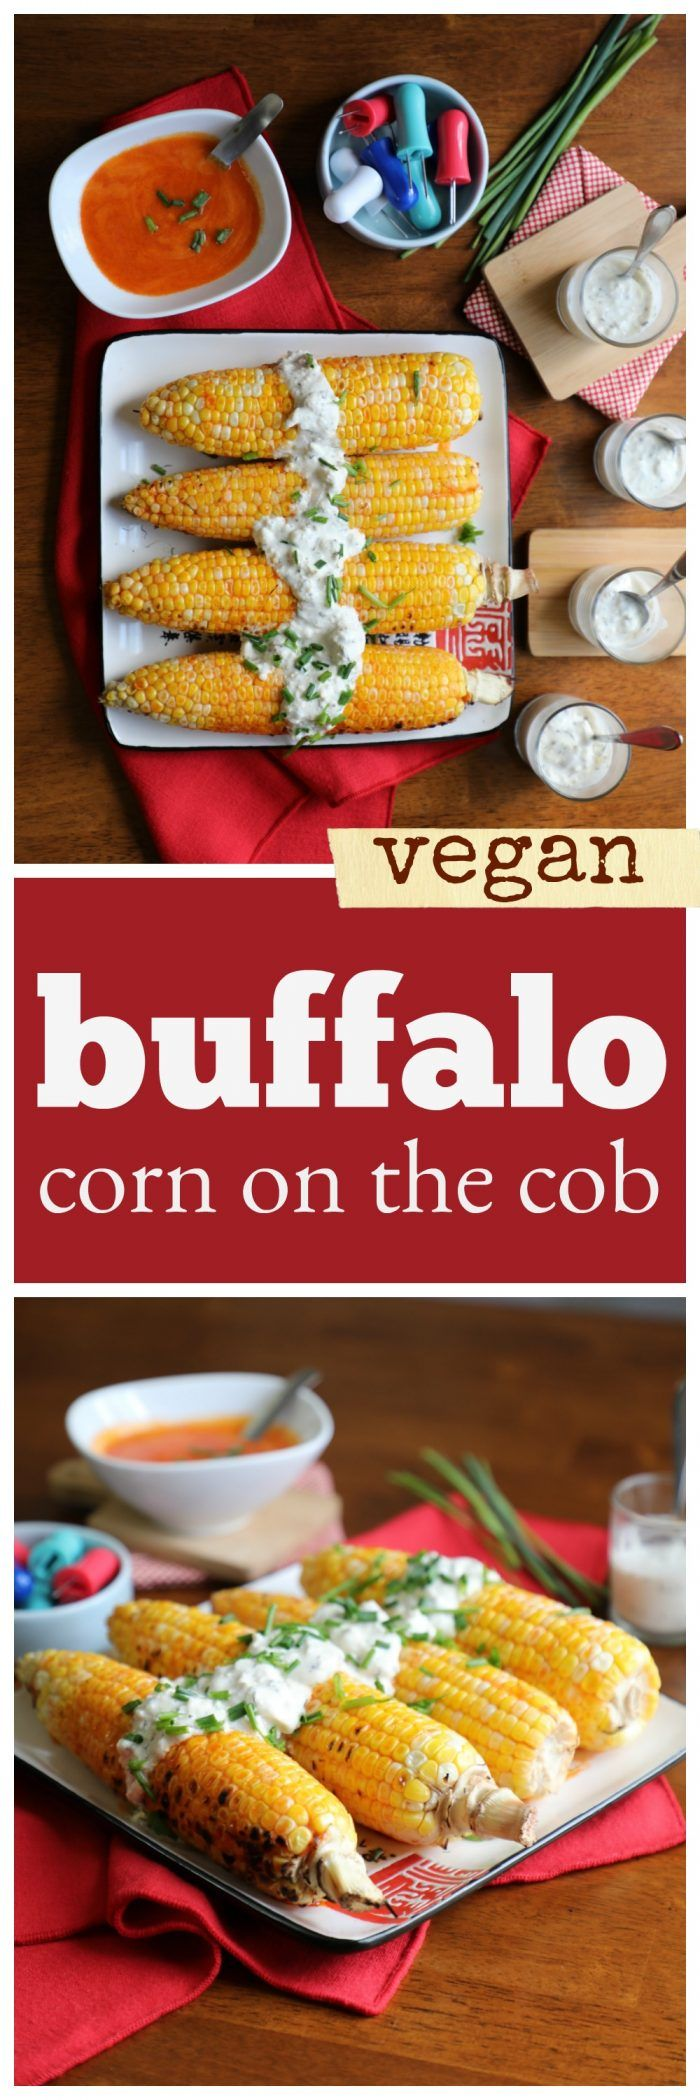 Buffalo-style grilled corn on the cob with vegan blue cheese dressing. This spicy side dish is perfect for your next cookout. Vegan, dairy-free, gluten-free.